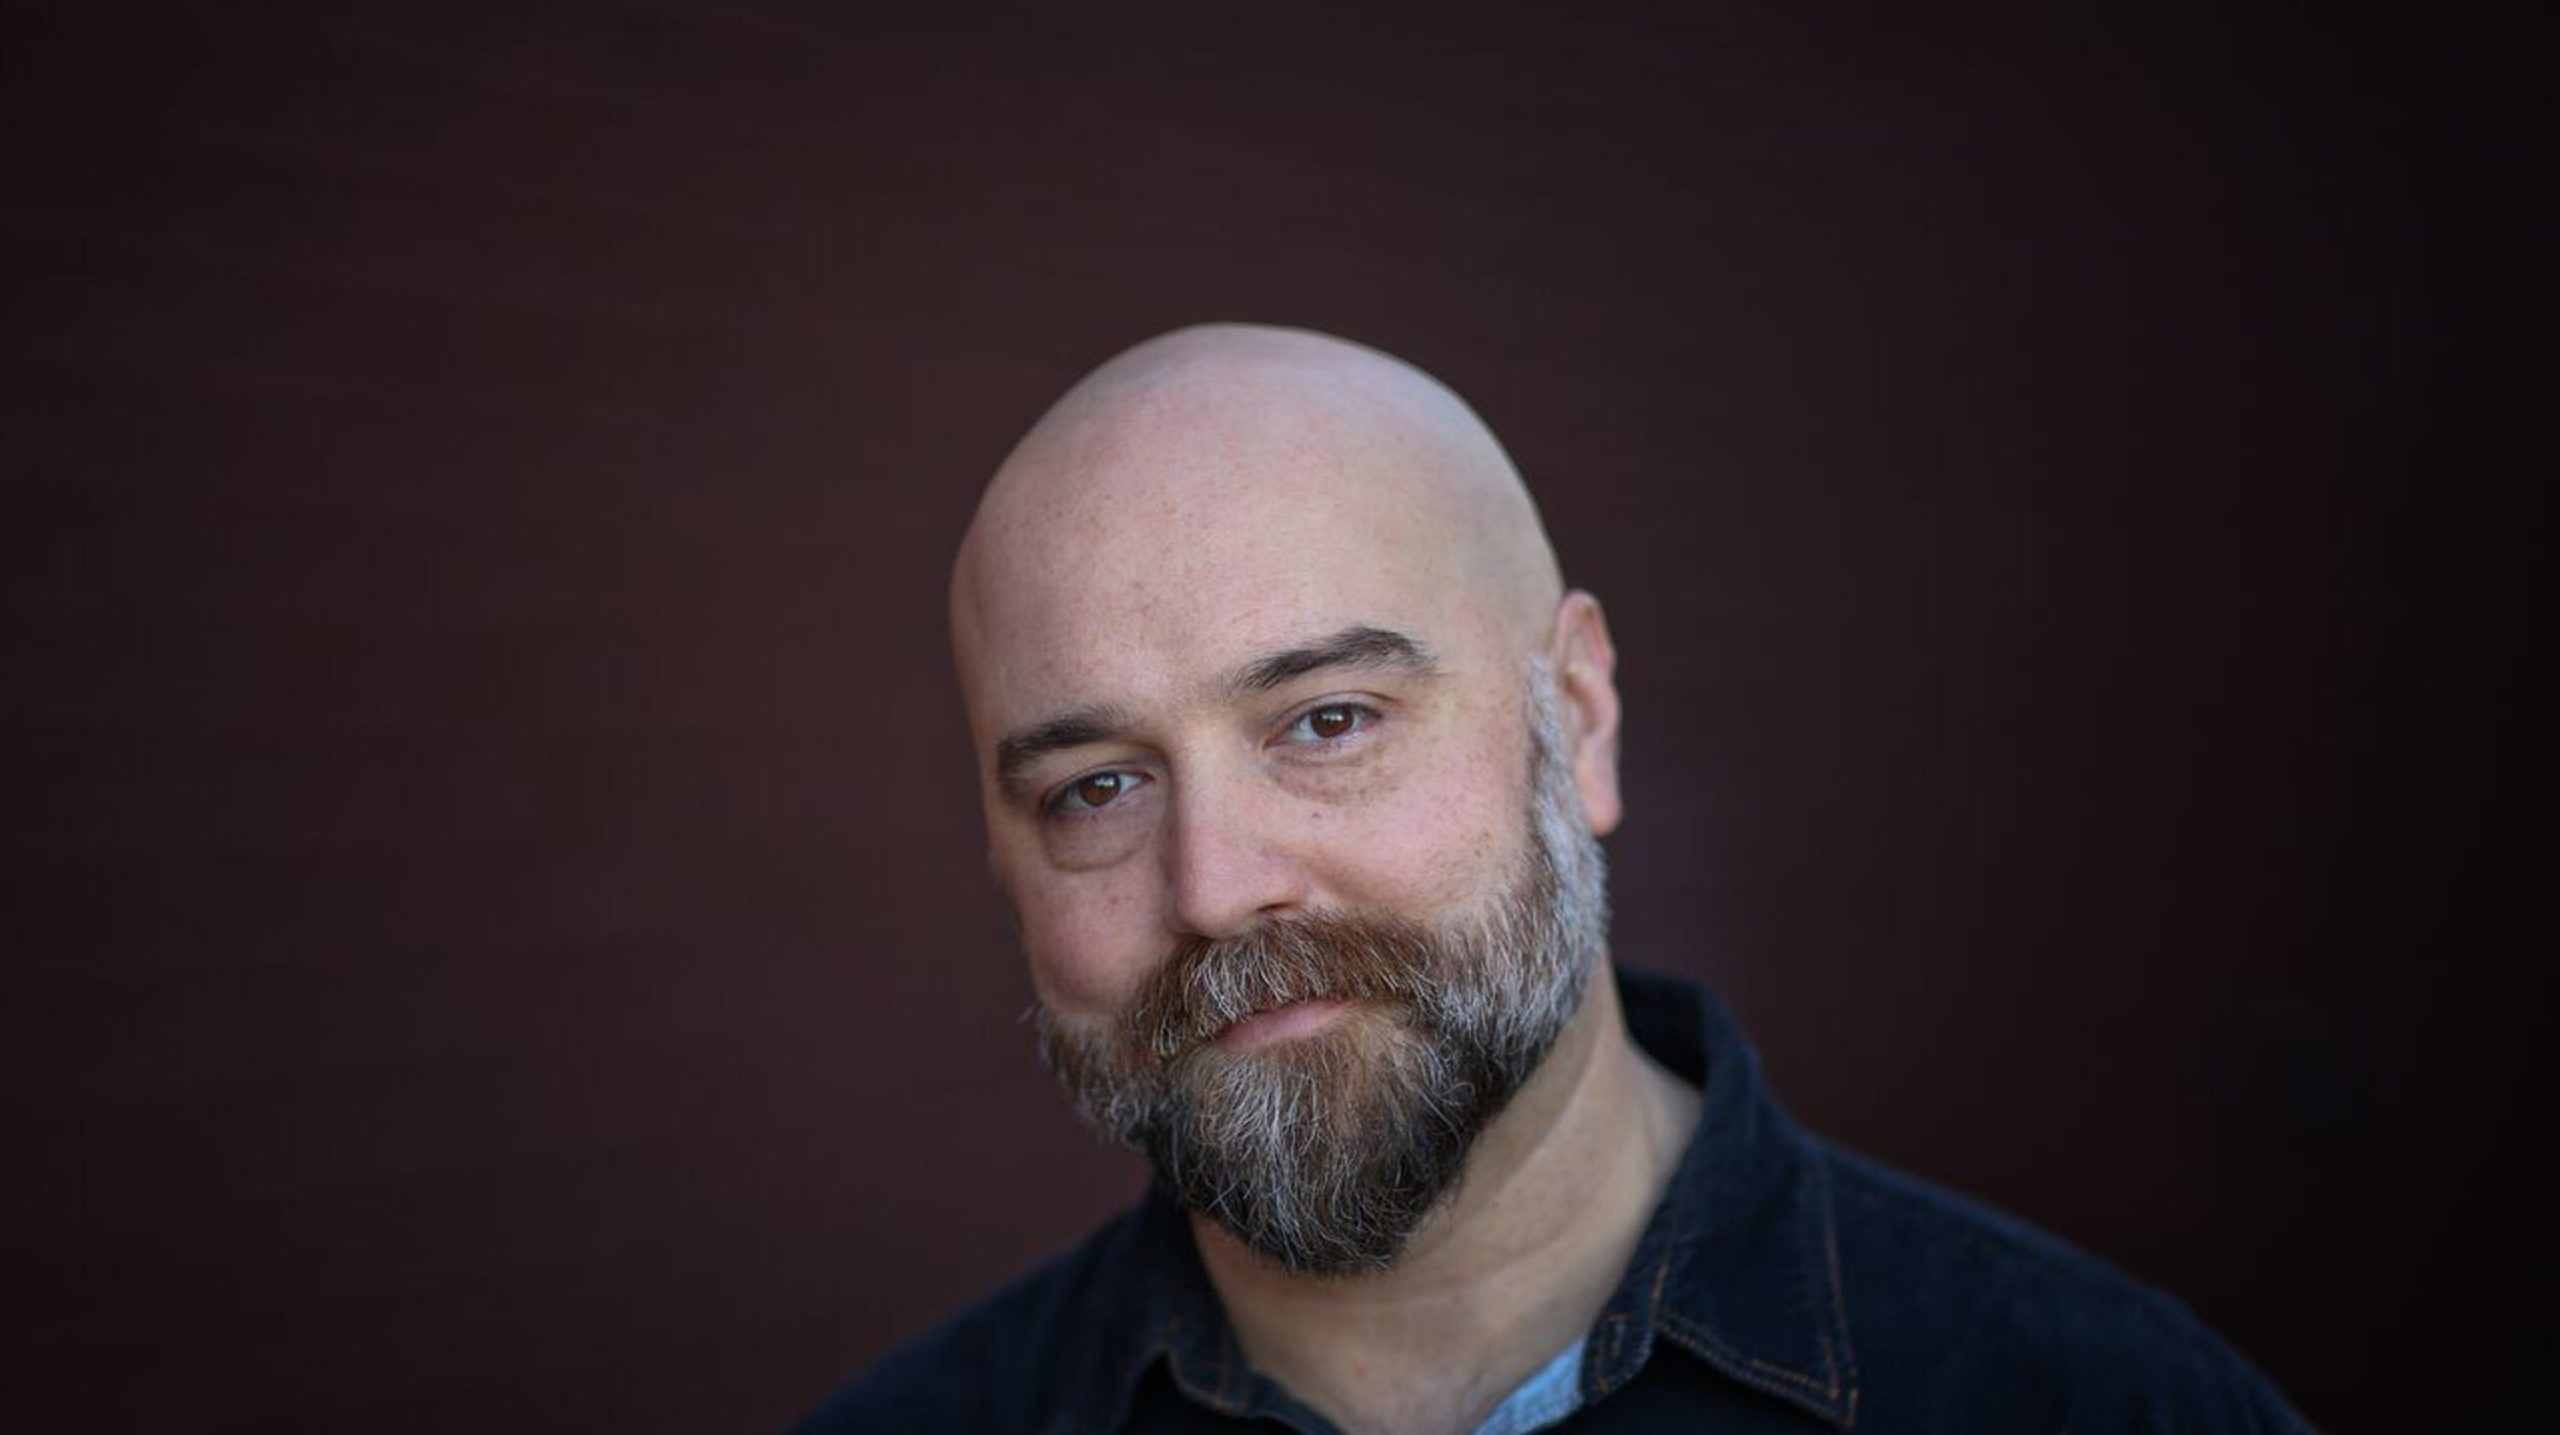 Craig Brewer, Director of Coming 2 America